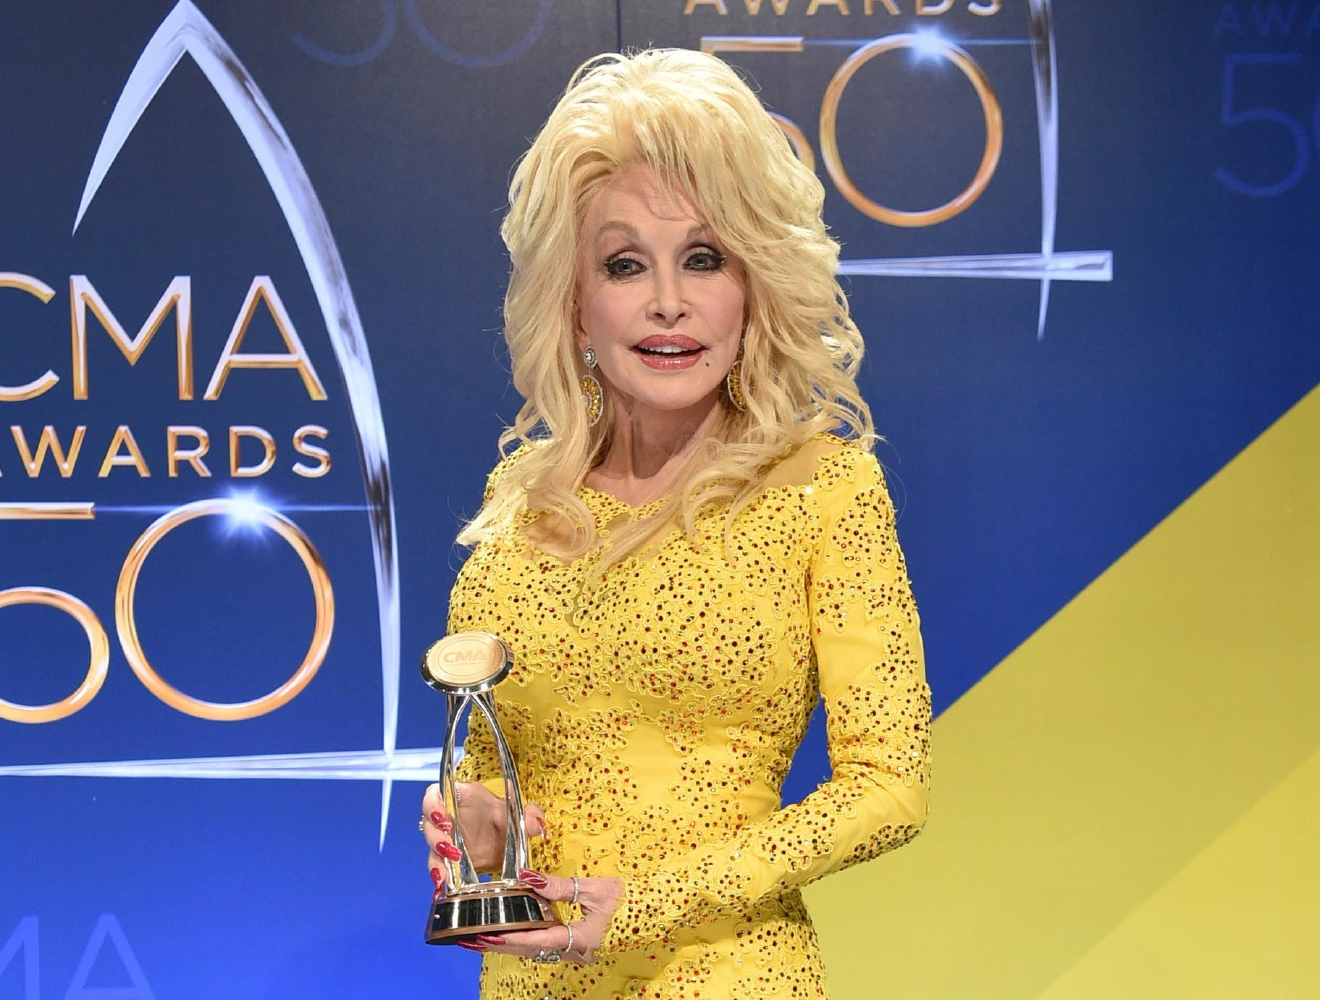 FILE - In this Nov. 2, 2016 file photo, Dolly Parton poses in the press room with the Willie Nelson Lifetime Achievement Award during the 50th annual CMA Awards in Nashville, Tenn. Parton says she's heartbroken about wildfires that tore through the Tennessee county where she grew up, but spared the Dollywood theme park that bears her name. At least 14,000 people have been forced to evacuate the tourist area of Gatlinburg, Tennessee, and a dozen people have been injured in the wildfires. (Photo by Evan Agostini/Invision/AP, File)